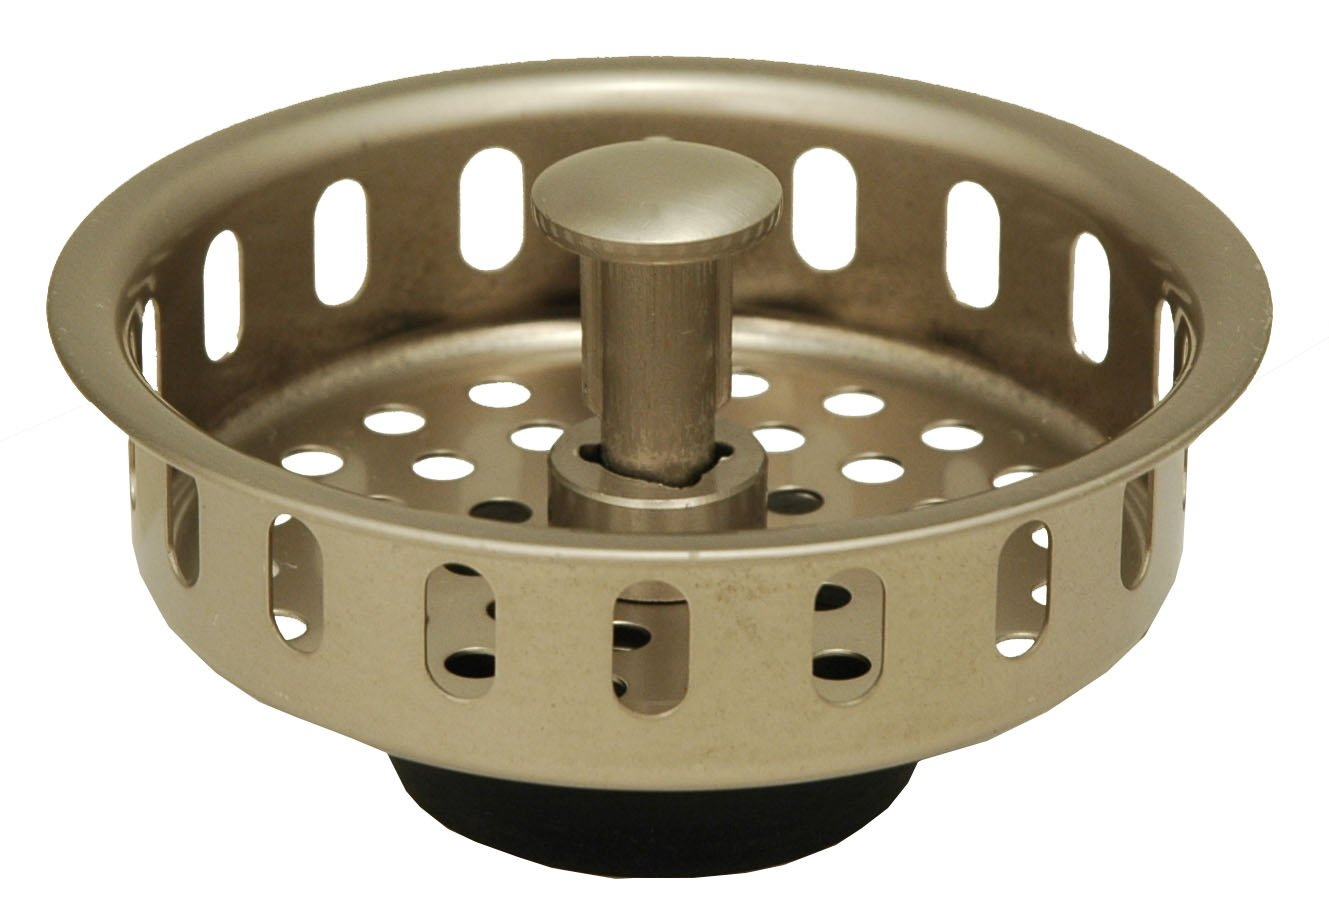 Stainless Steel Replacement Basket for Kitchen Sink, Satin Nickel Finish - By Plumb USA